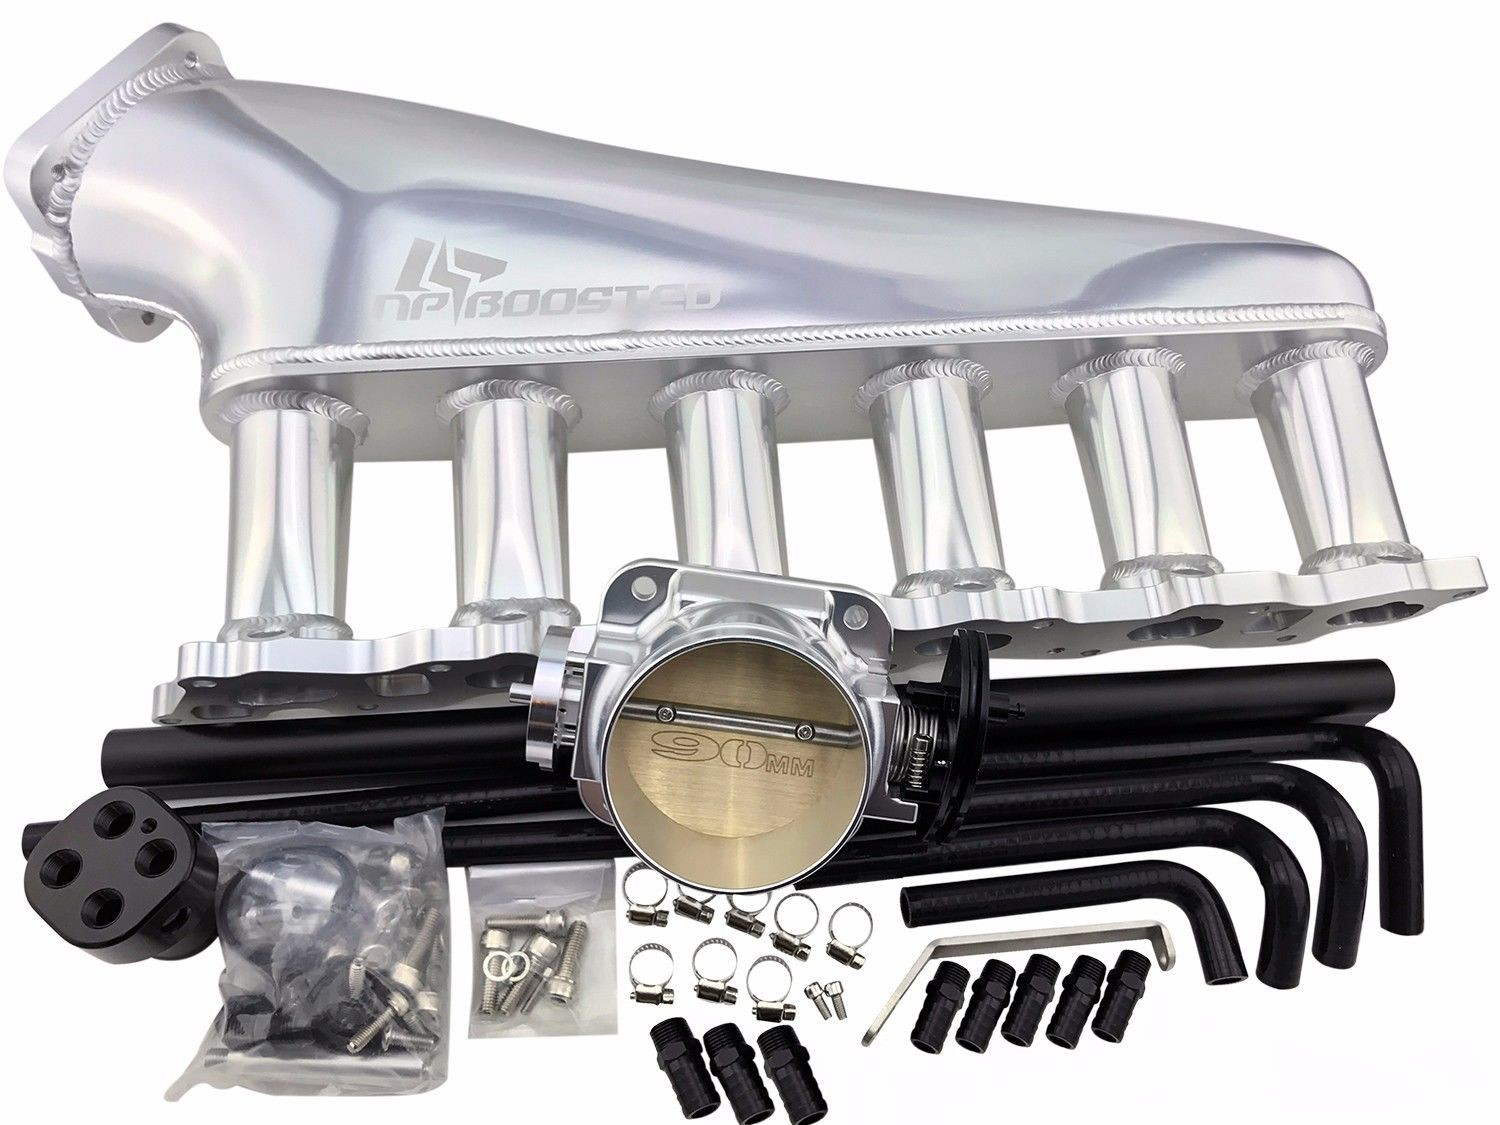 1989-1994 SKYLINE RB20DET INTAKE MANIFOLD KIT 90MM THROTTLE BODY CEFIRO LAUREL